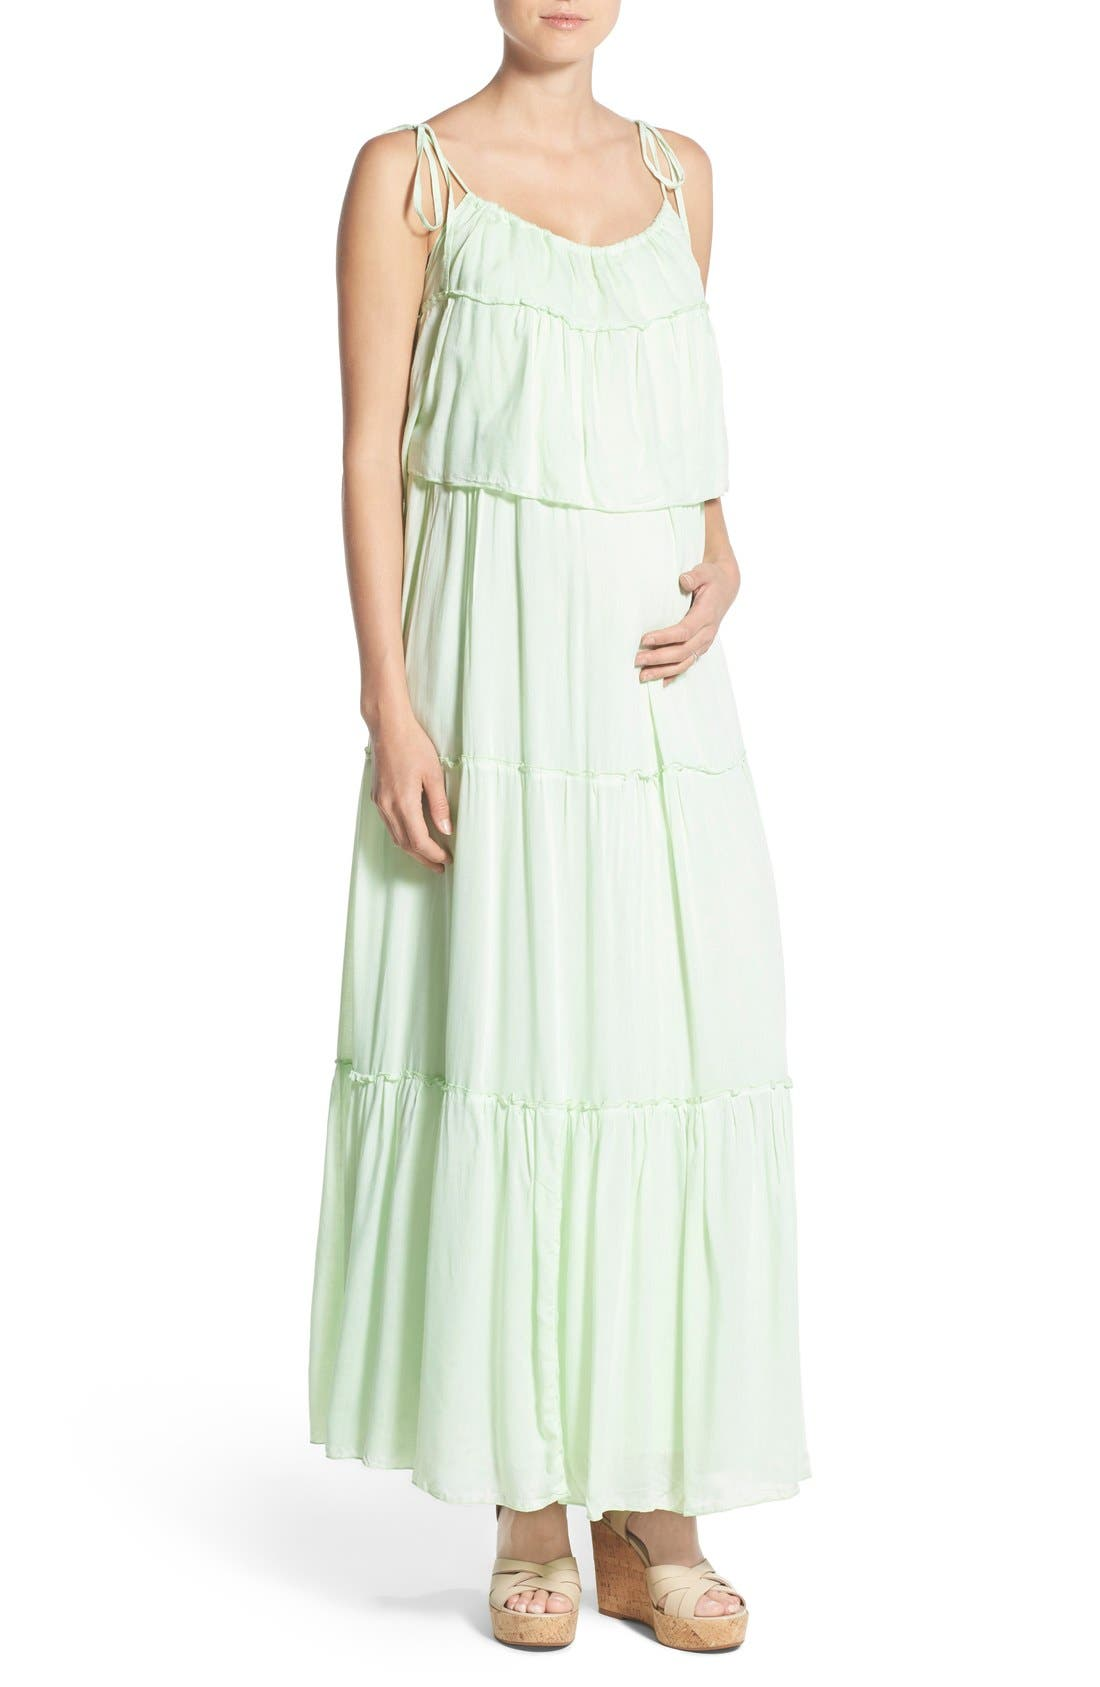 'Songbird' Popover Maternity/Nursing Maxi Dress,                             Main thumbnail 1, color,                             MINT